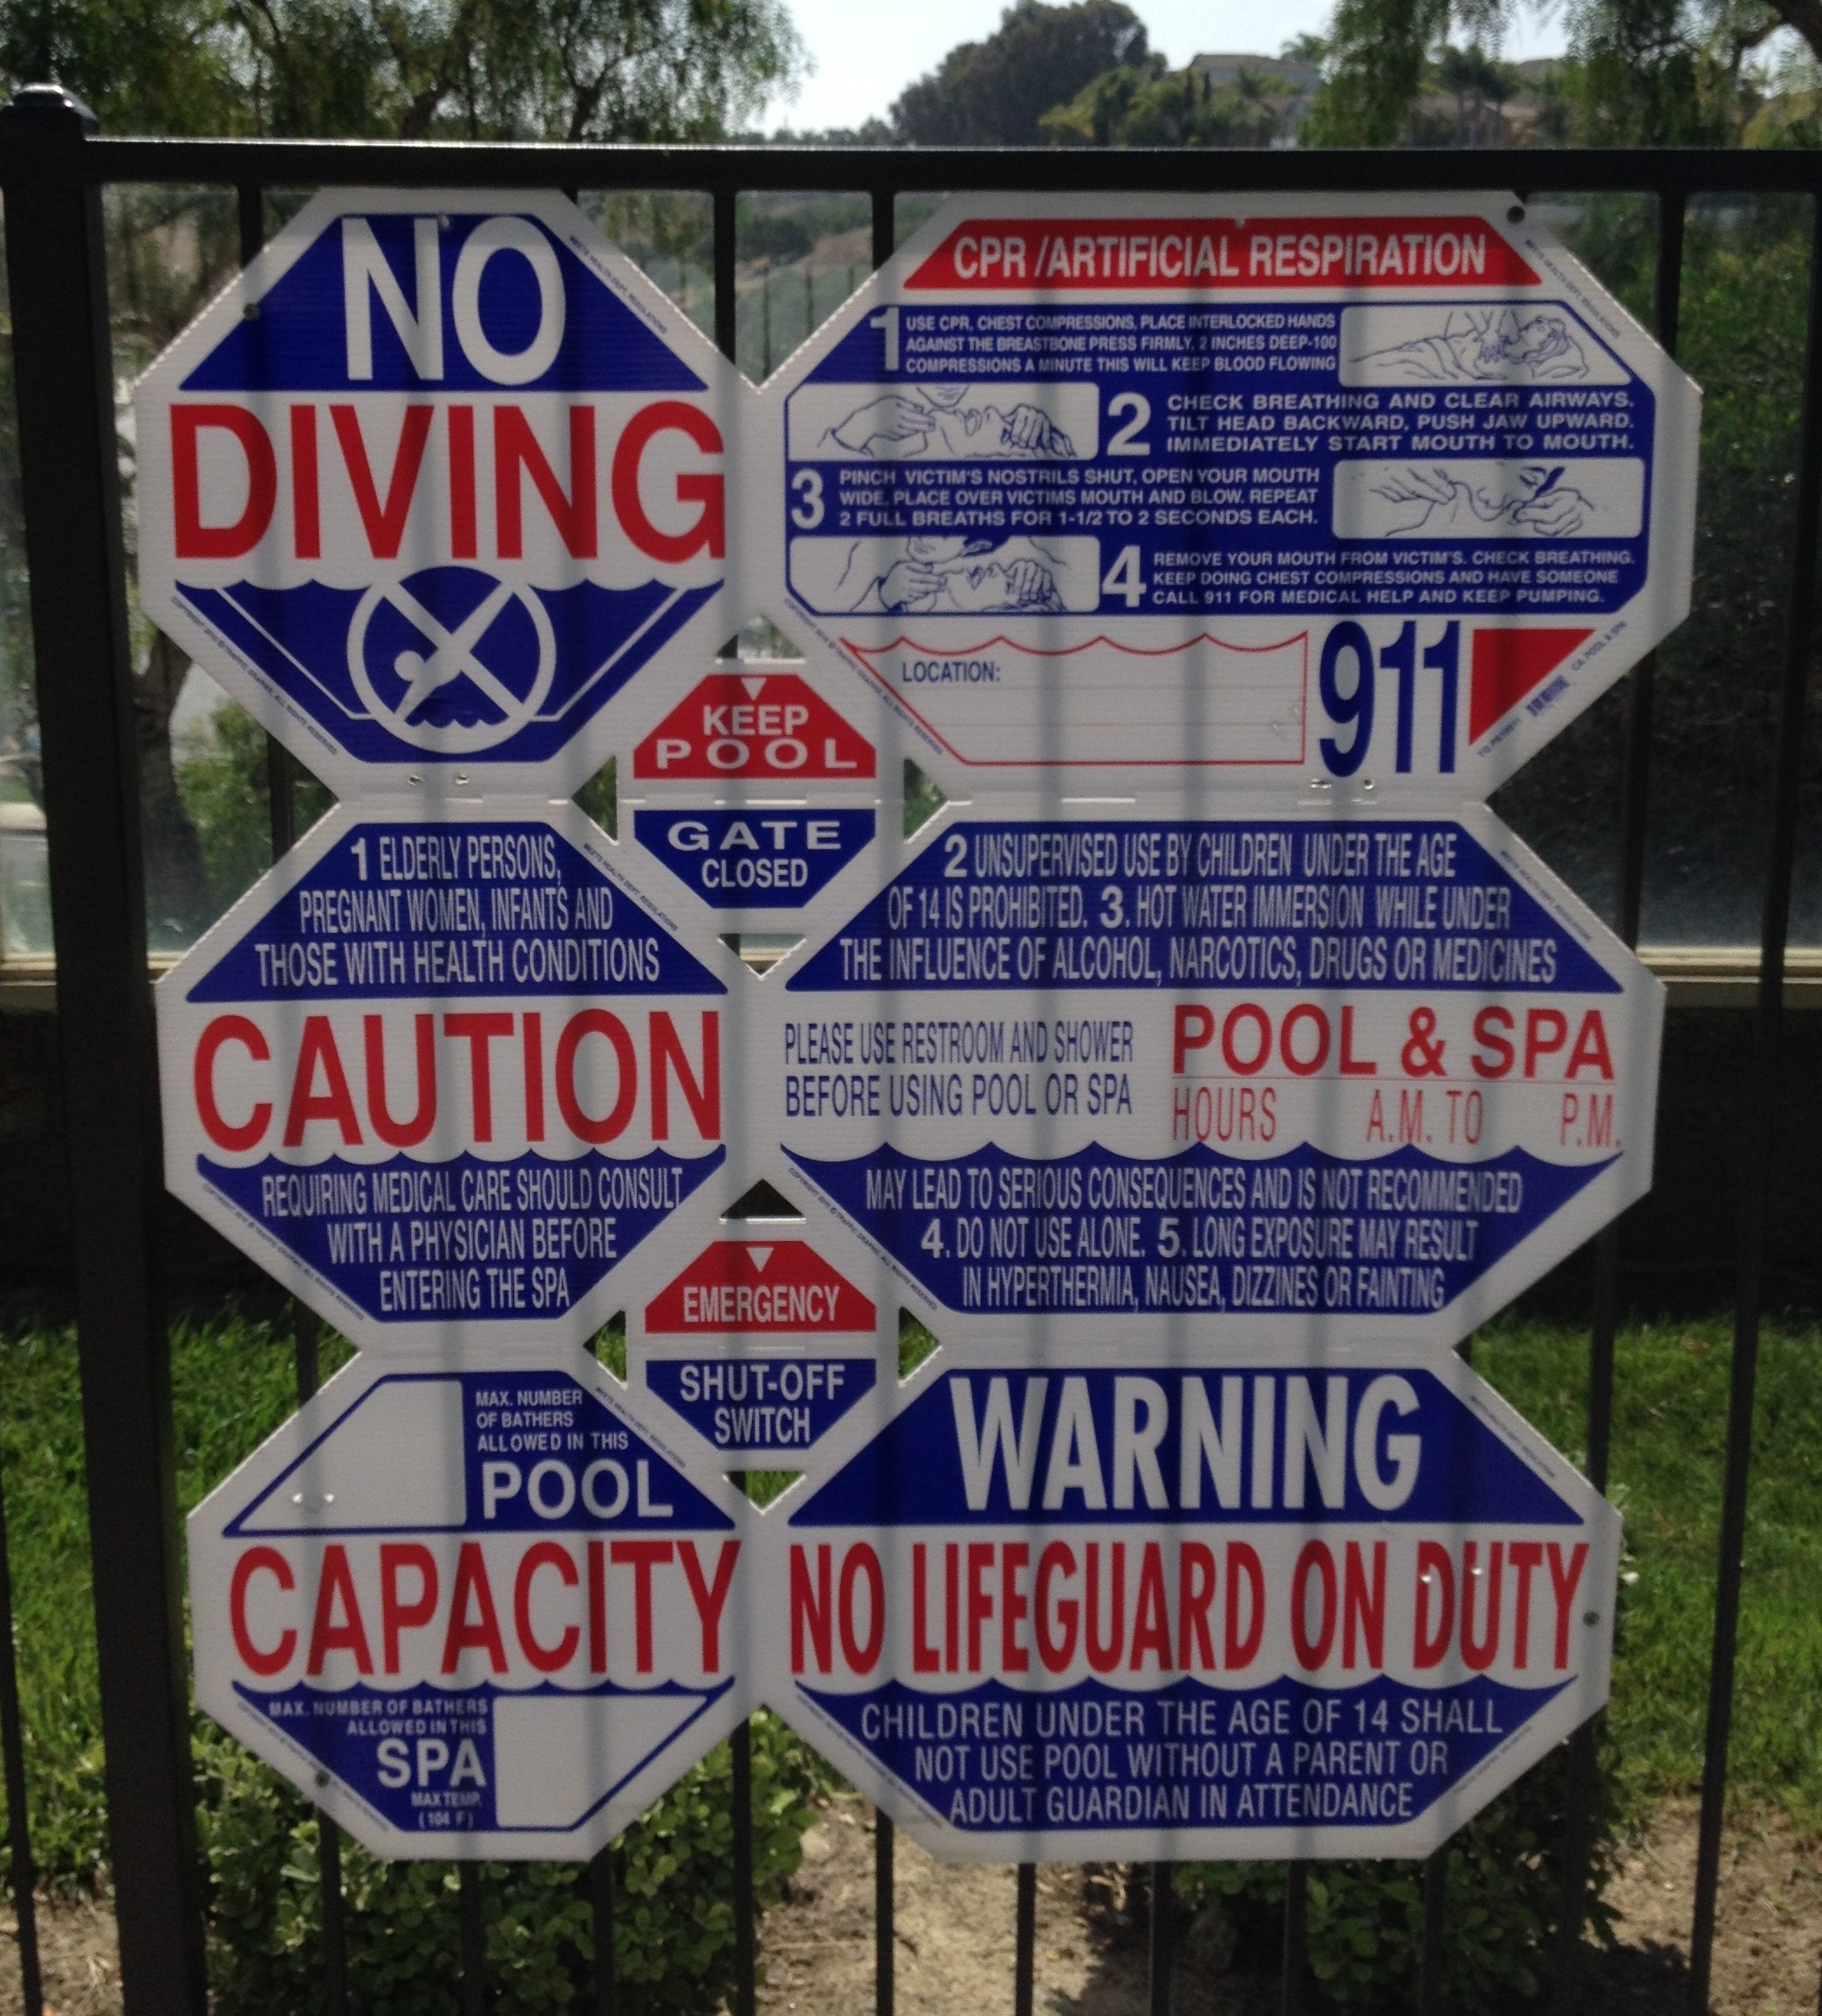 Public Pool Signage Requirements In California